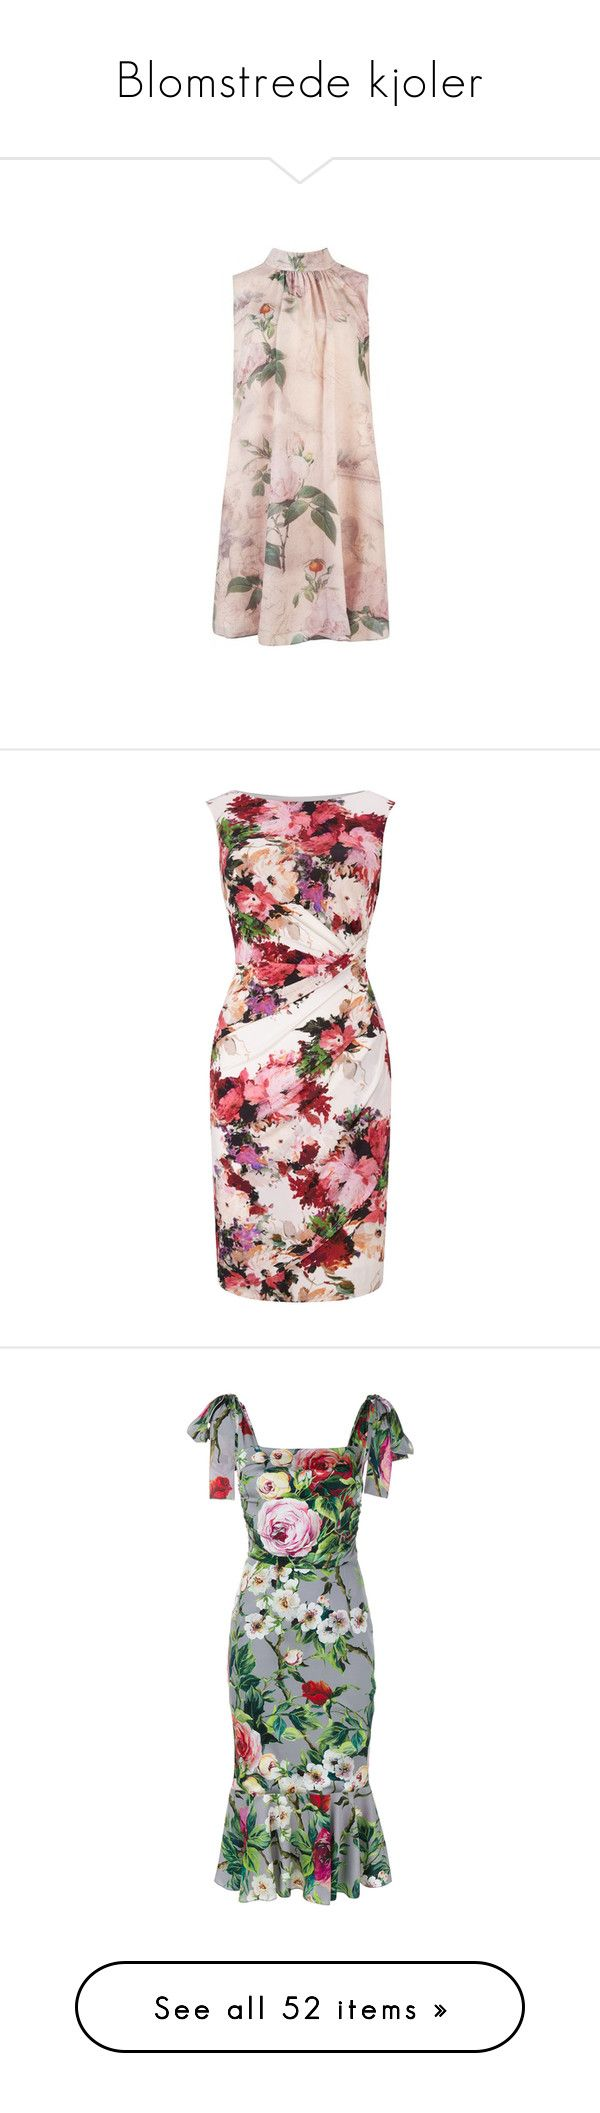 """Blomstrede kjoler"" by louvillia ❤ liked on Polyvore featuring dresses, ted baker dresses, flower pattern dress, ted baker, flower print dress, floral printed dress, pink mini dress, pink midi dress, midi pencil dress and long-sleeve mini dress"